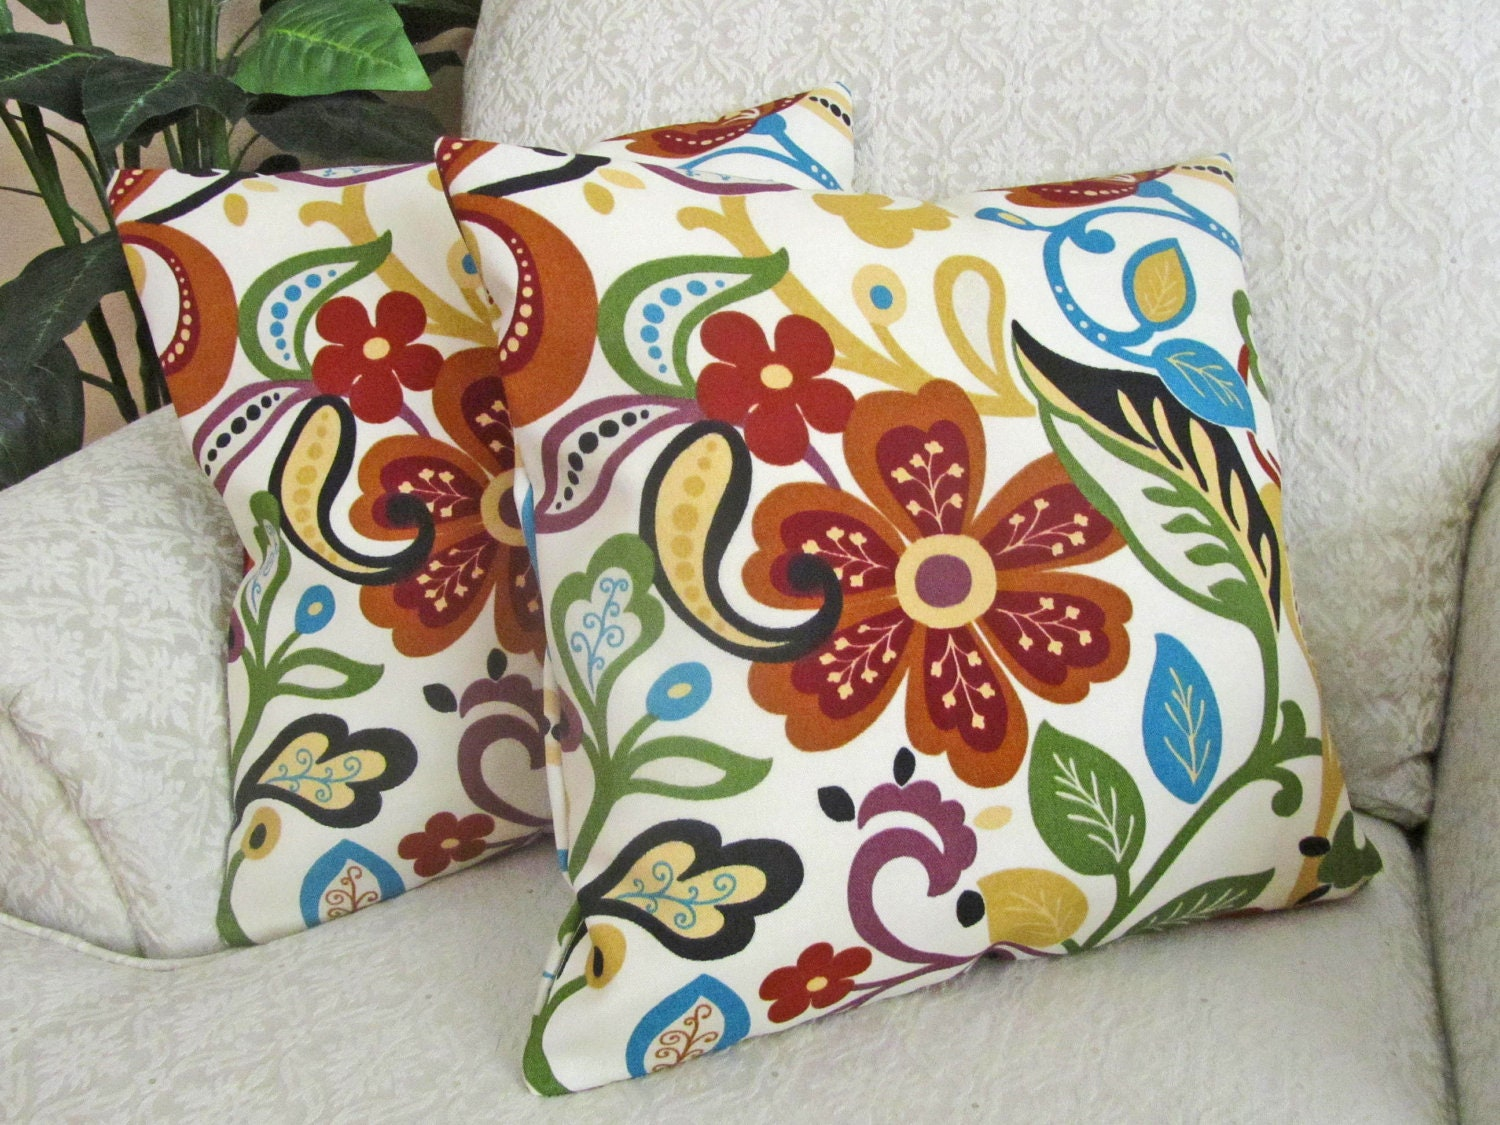 Floral Throw Pillow Cover Decorative Sofa Cushion Cover Orange